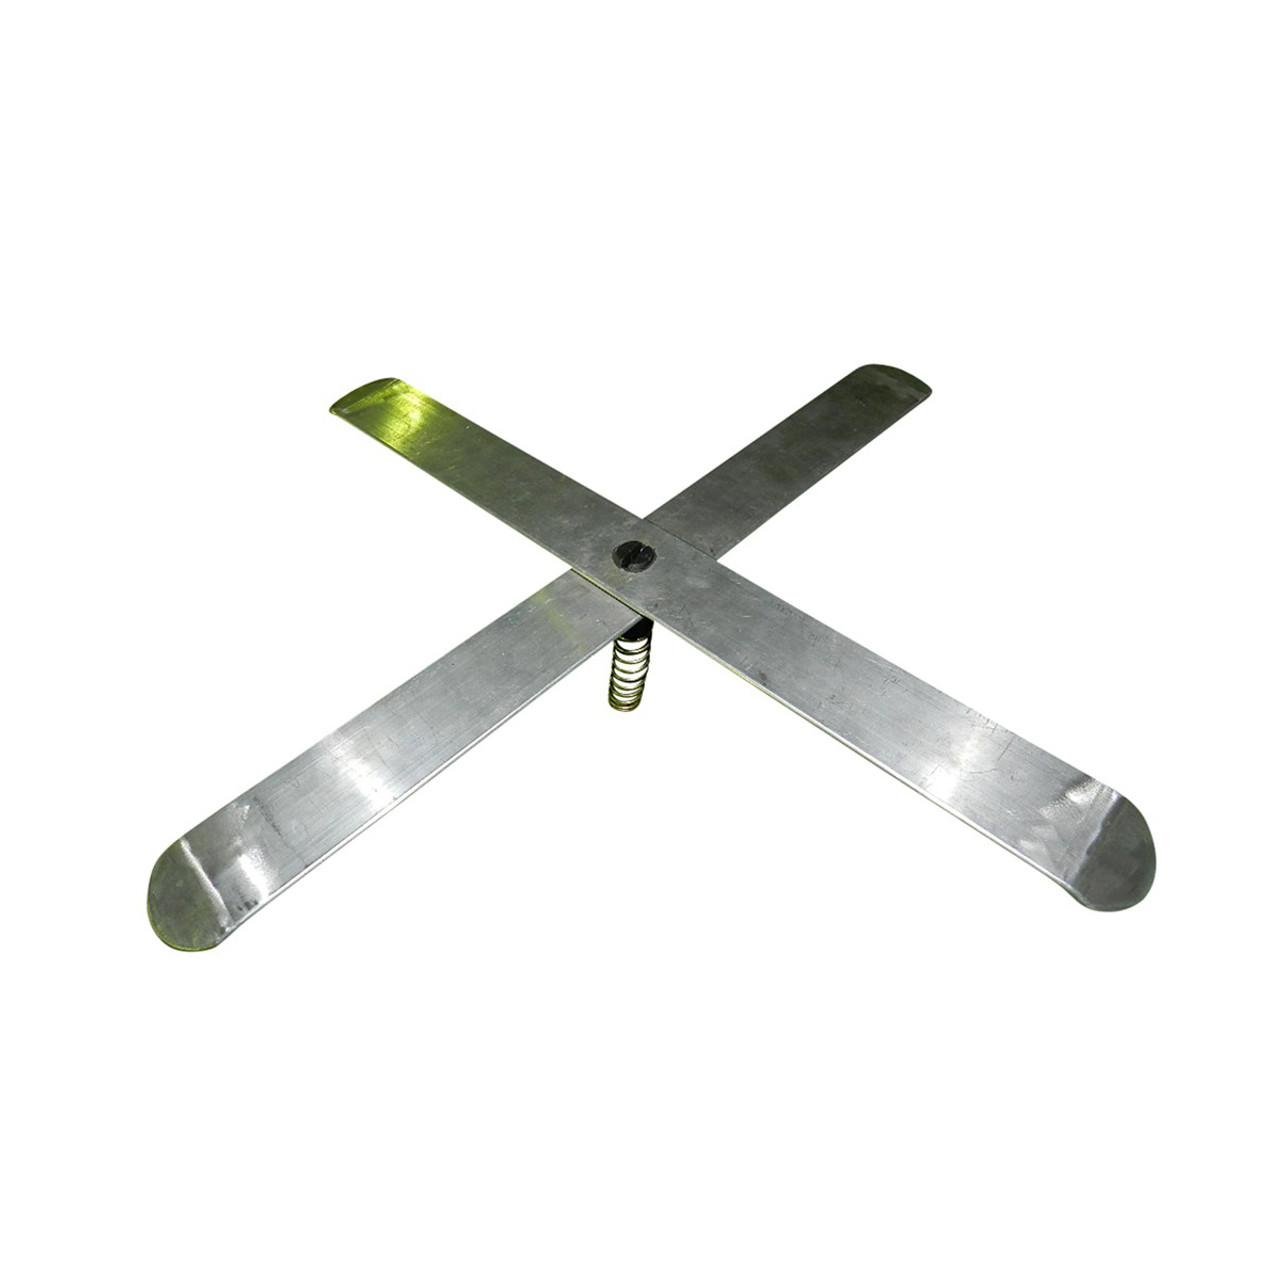 Tarp Lifter Suits Standard Tent Pole